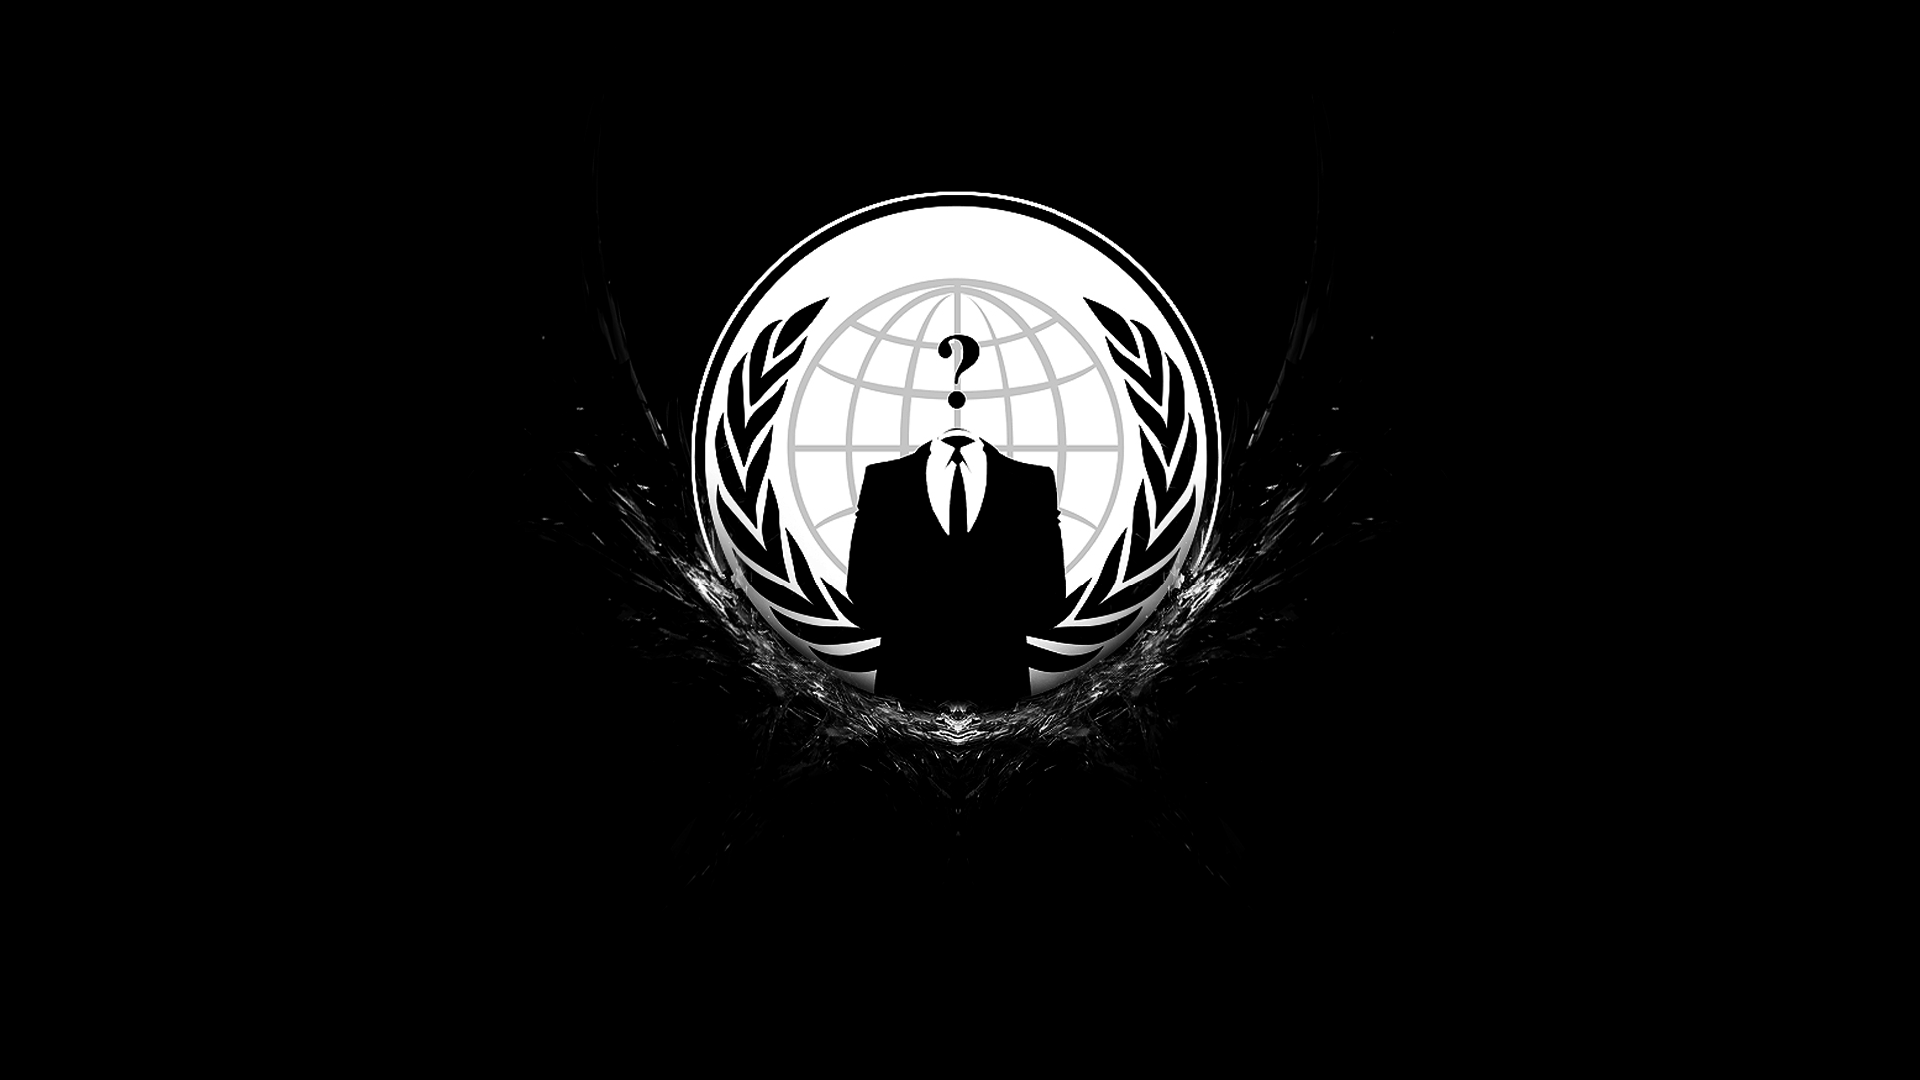 Download Anonymous Logos Wallpaper 1920x1080 Wallpoper 1920x1080